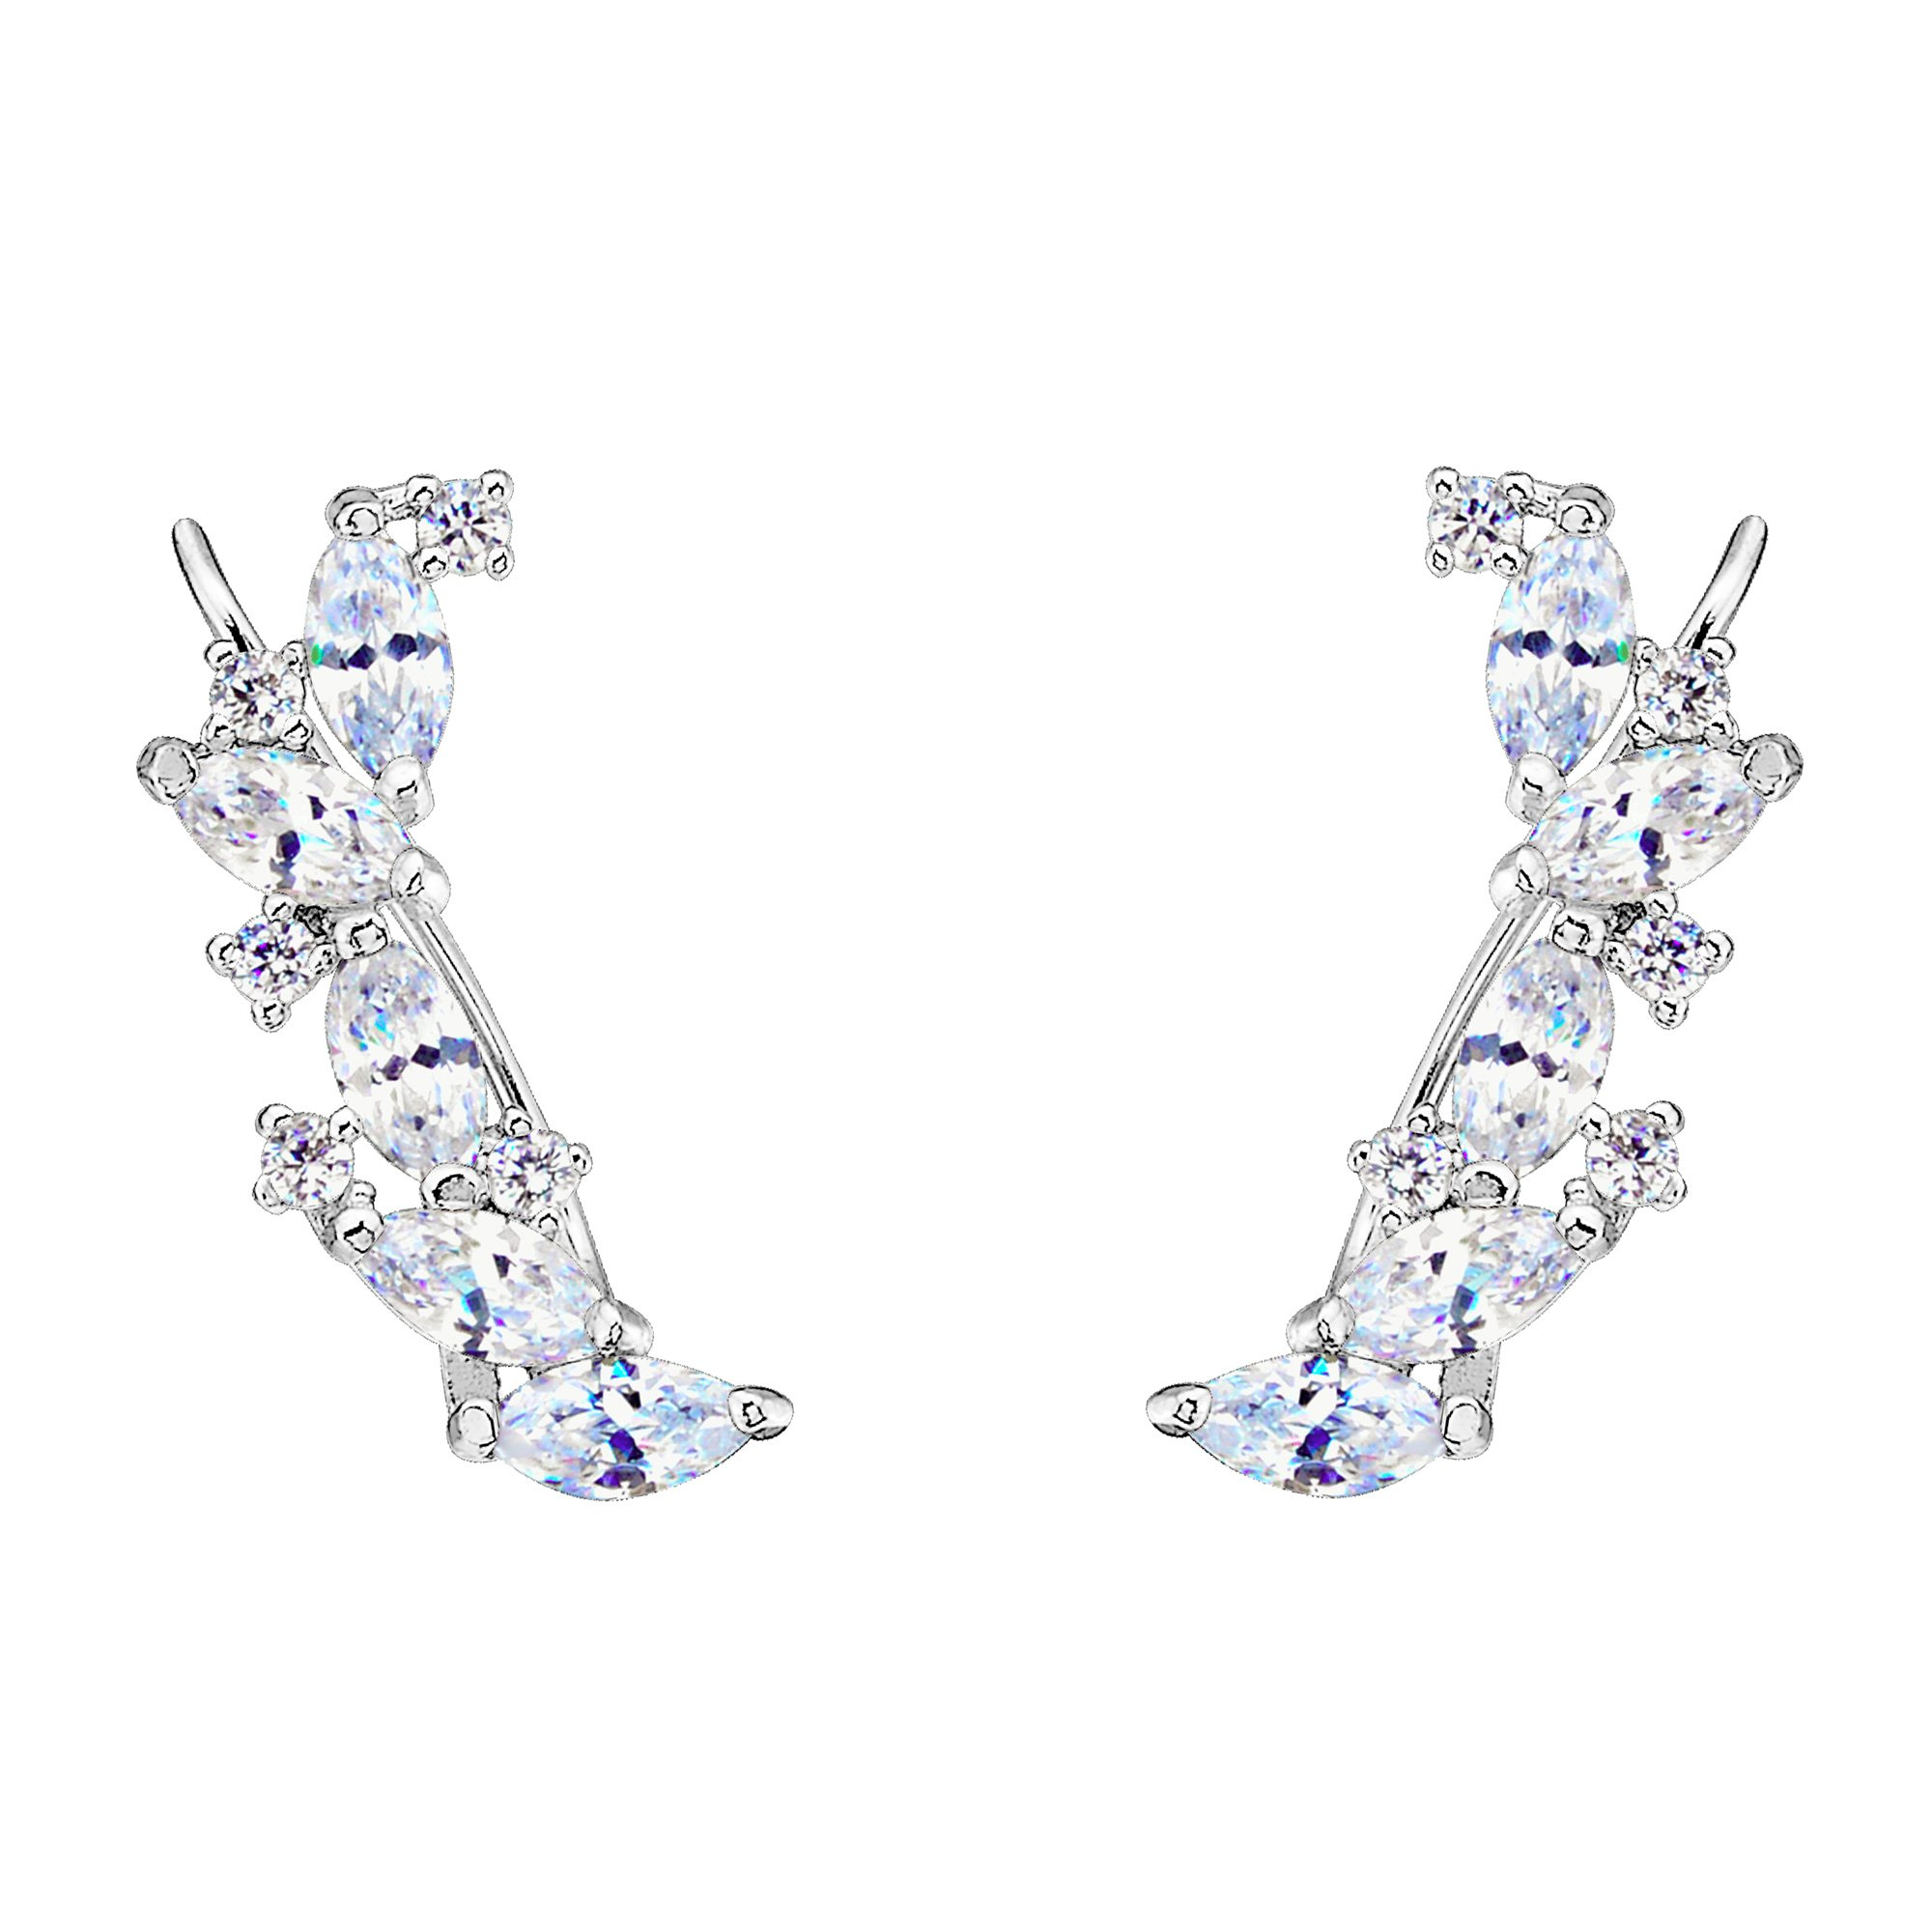 EVER FAITH 925 Sterling Silver Cubic Zirconia Elegant Ear Cuff Wire Wrap Sweep Hook Earrings Clear 1 Pair